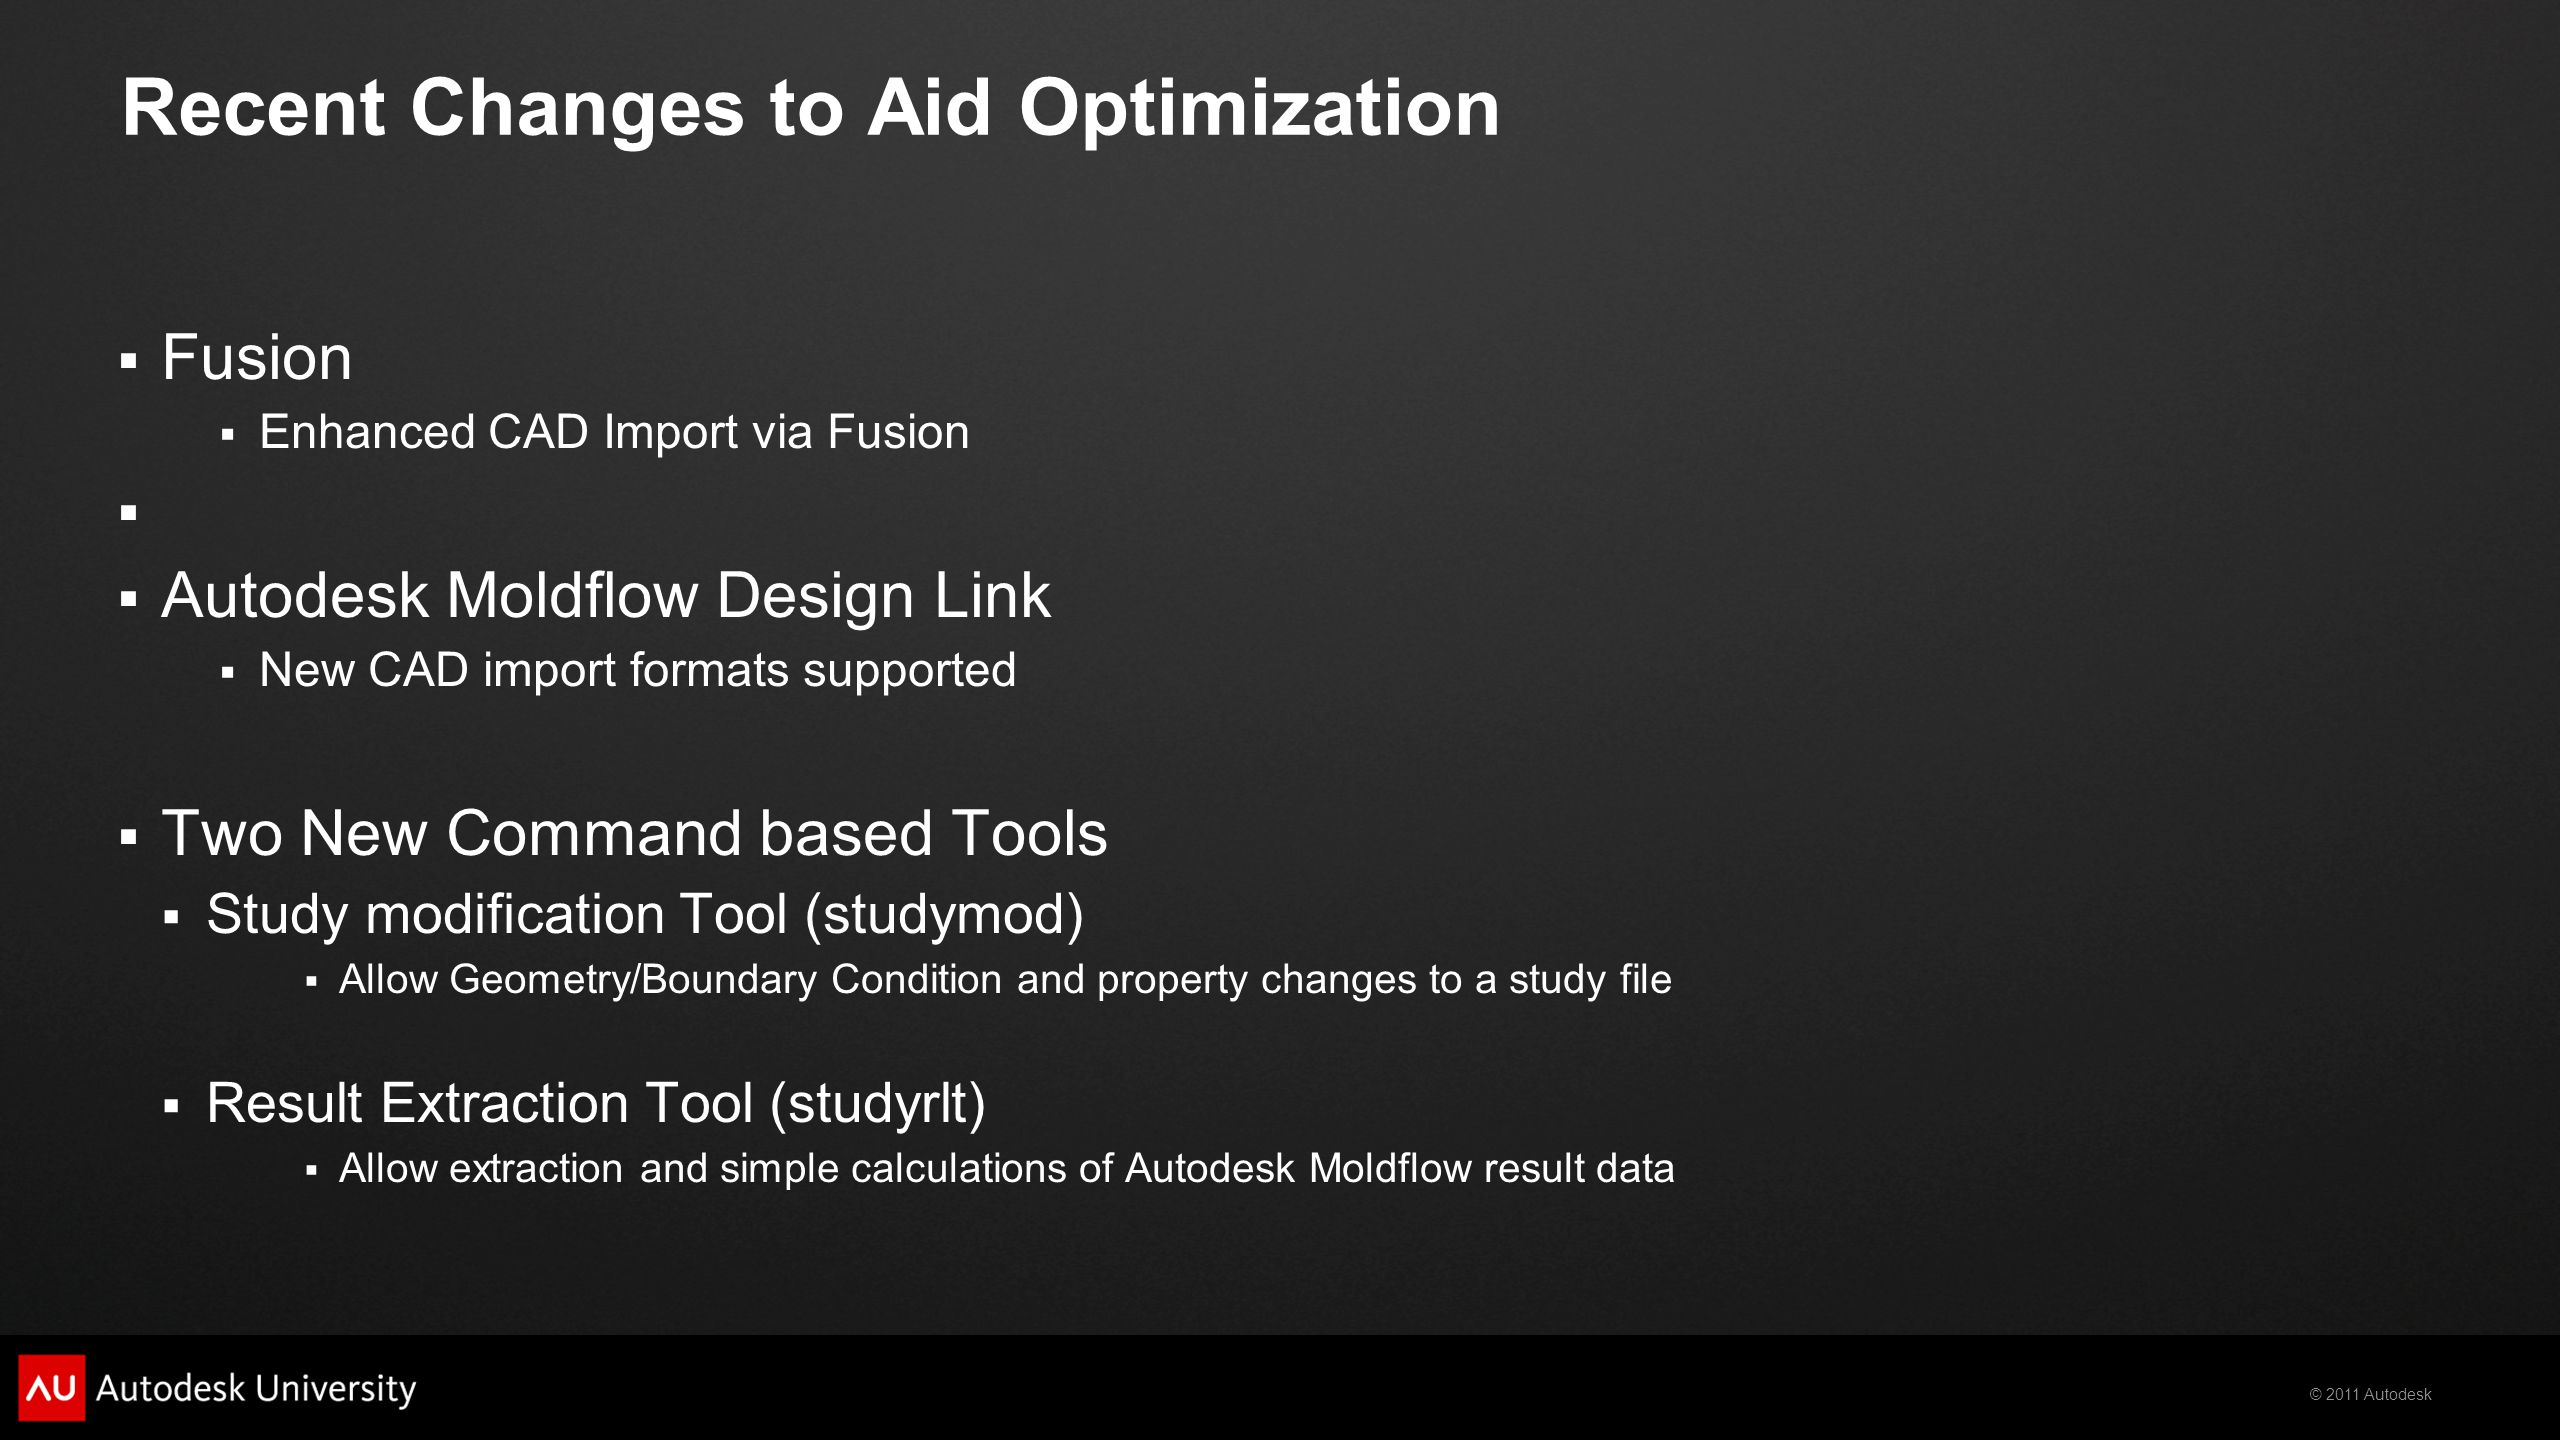 © 2011 Autodesk Recent Changes to Aid Optimization  Fusion  Enhanced CAD Import via Fusion   Autodesk Moldflow Design Link  New CAD import formats supported  Two New Command based Tools  Study modification Tool (studymod)  Allow Geometry/Boundary Condition and property changes to a study file  Result Extraction Tool (studyrlt)  Allow extraction and simple calculations of Autodesk Moldflow result data